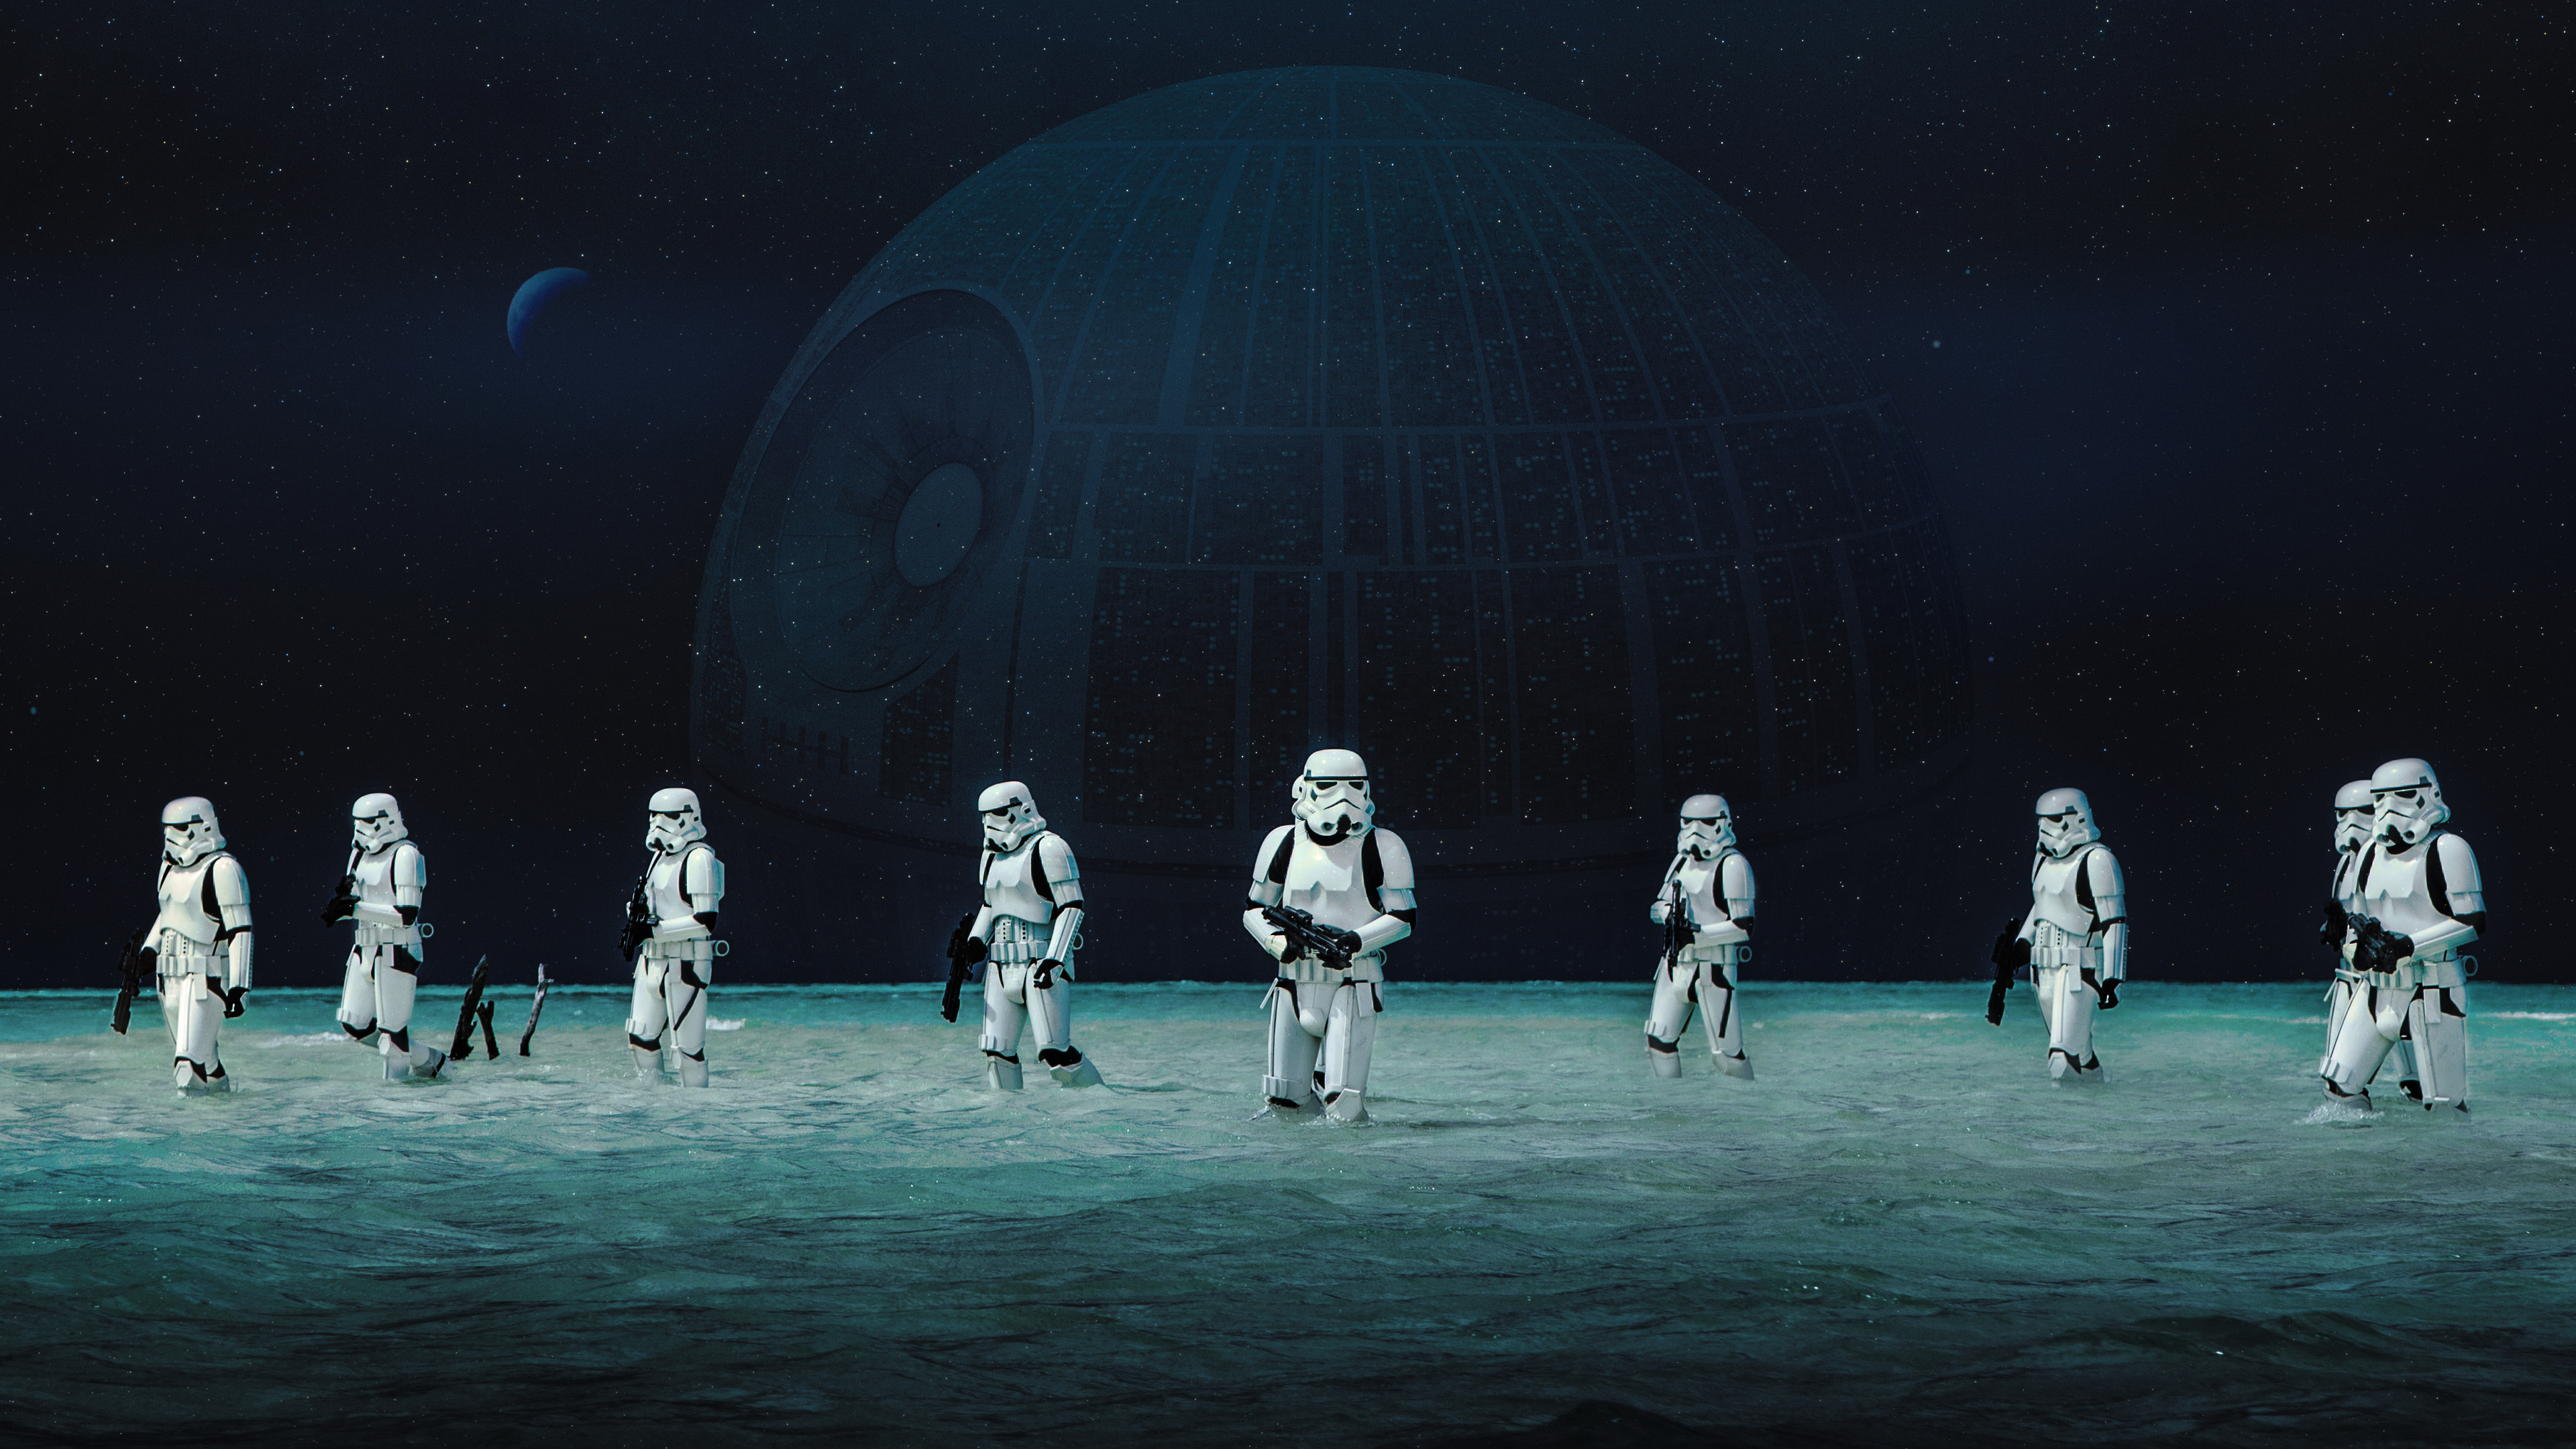 4k Star Wars Backgrounds Posted By Ryan Anderson